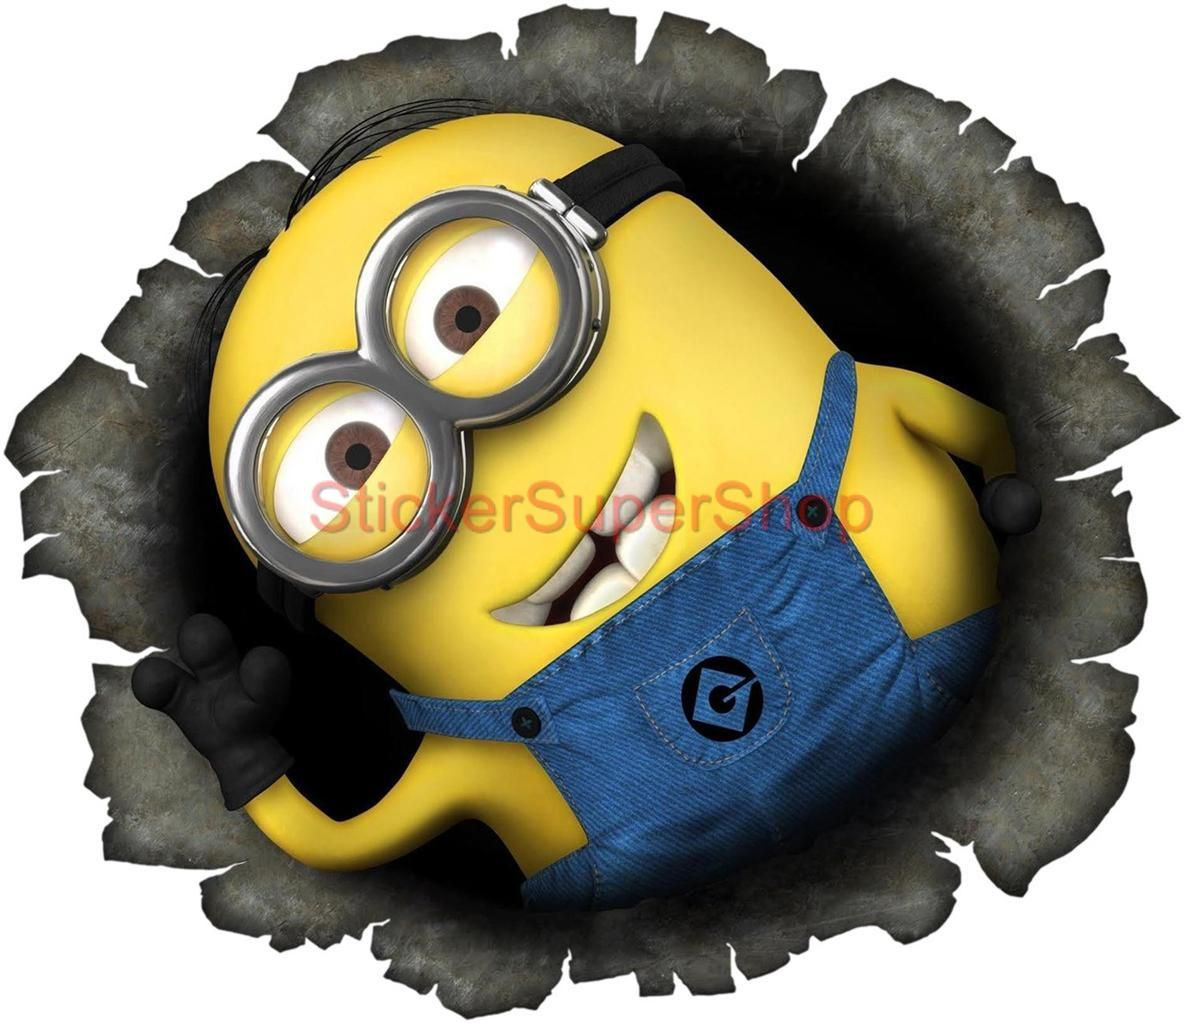 Minion Wall Decor details about despicable me 2 minion in my wall movie decal